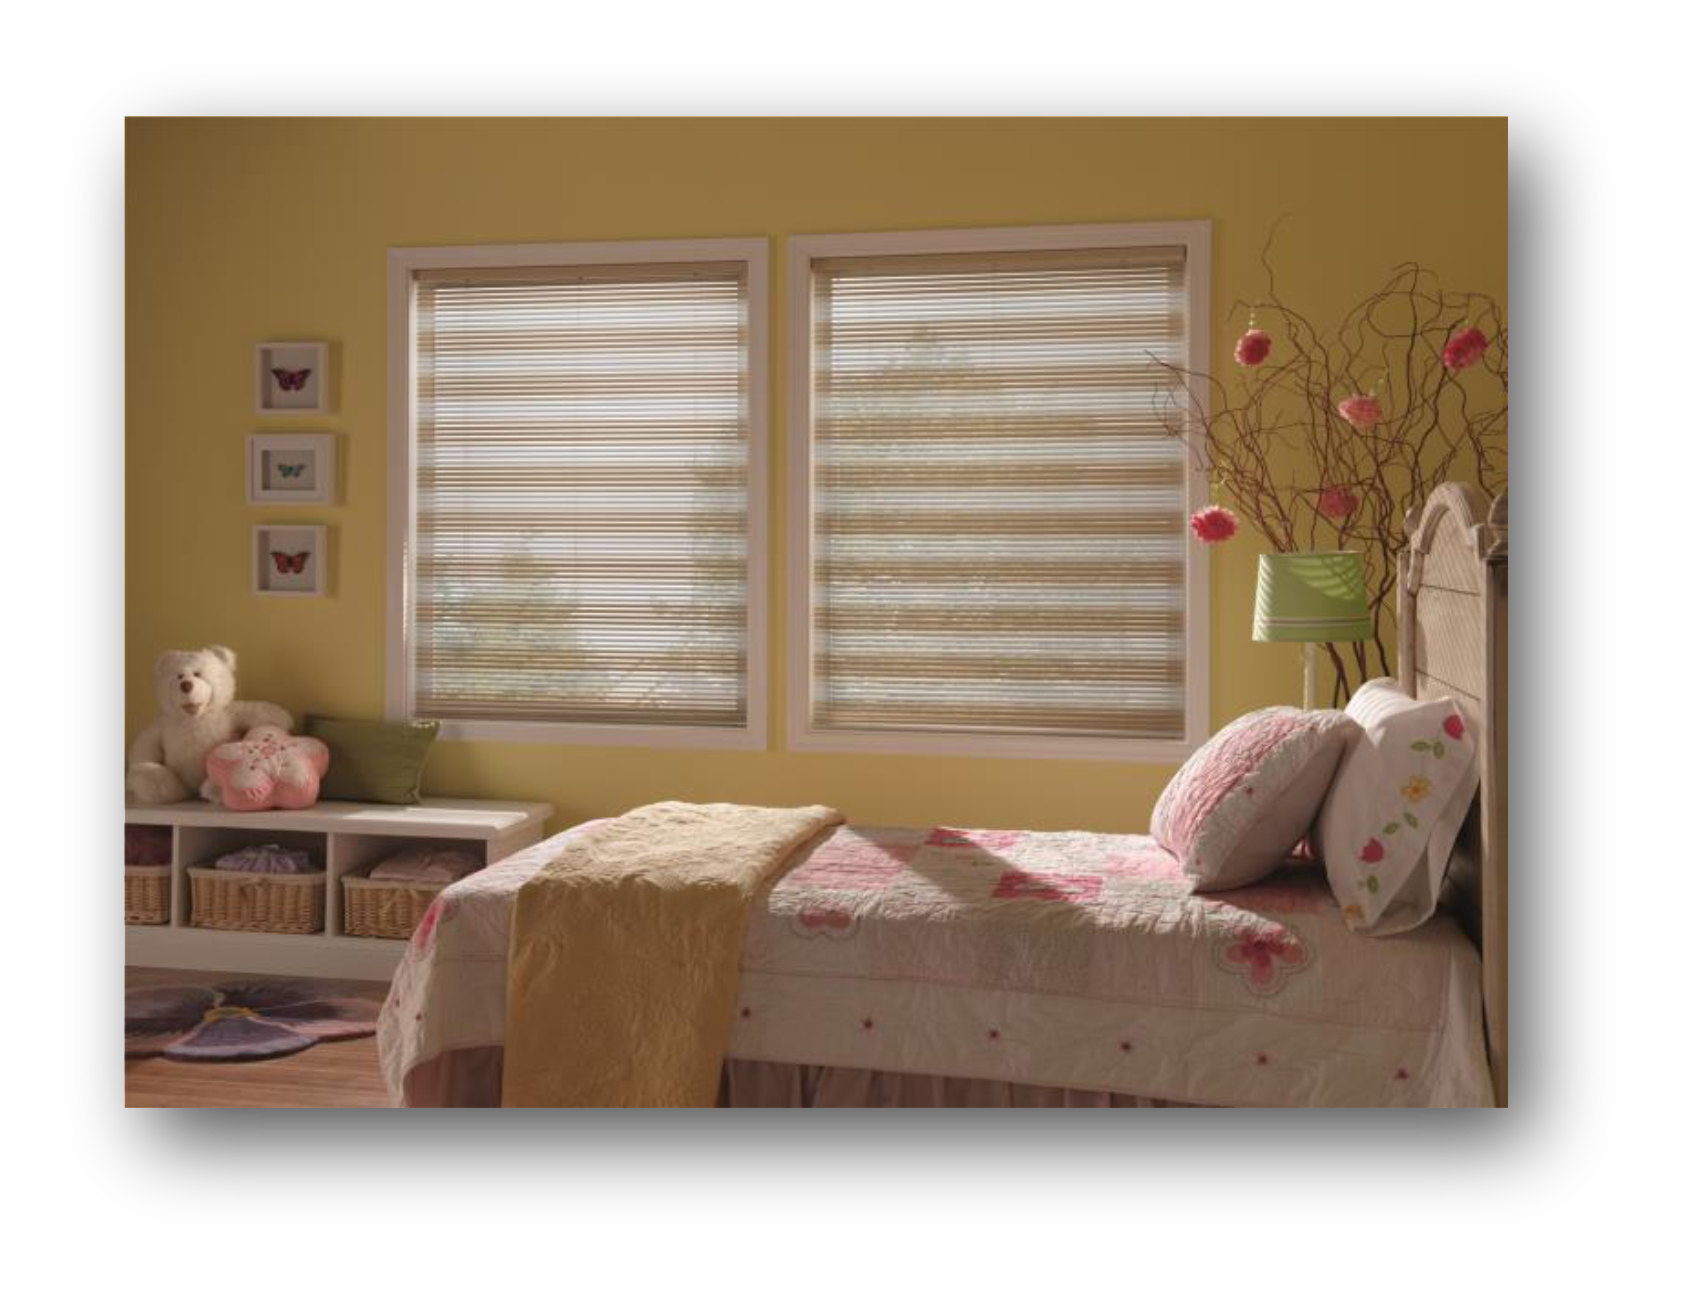 Safety First with child friendly blinds